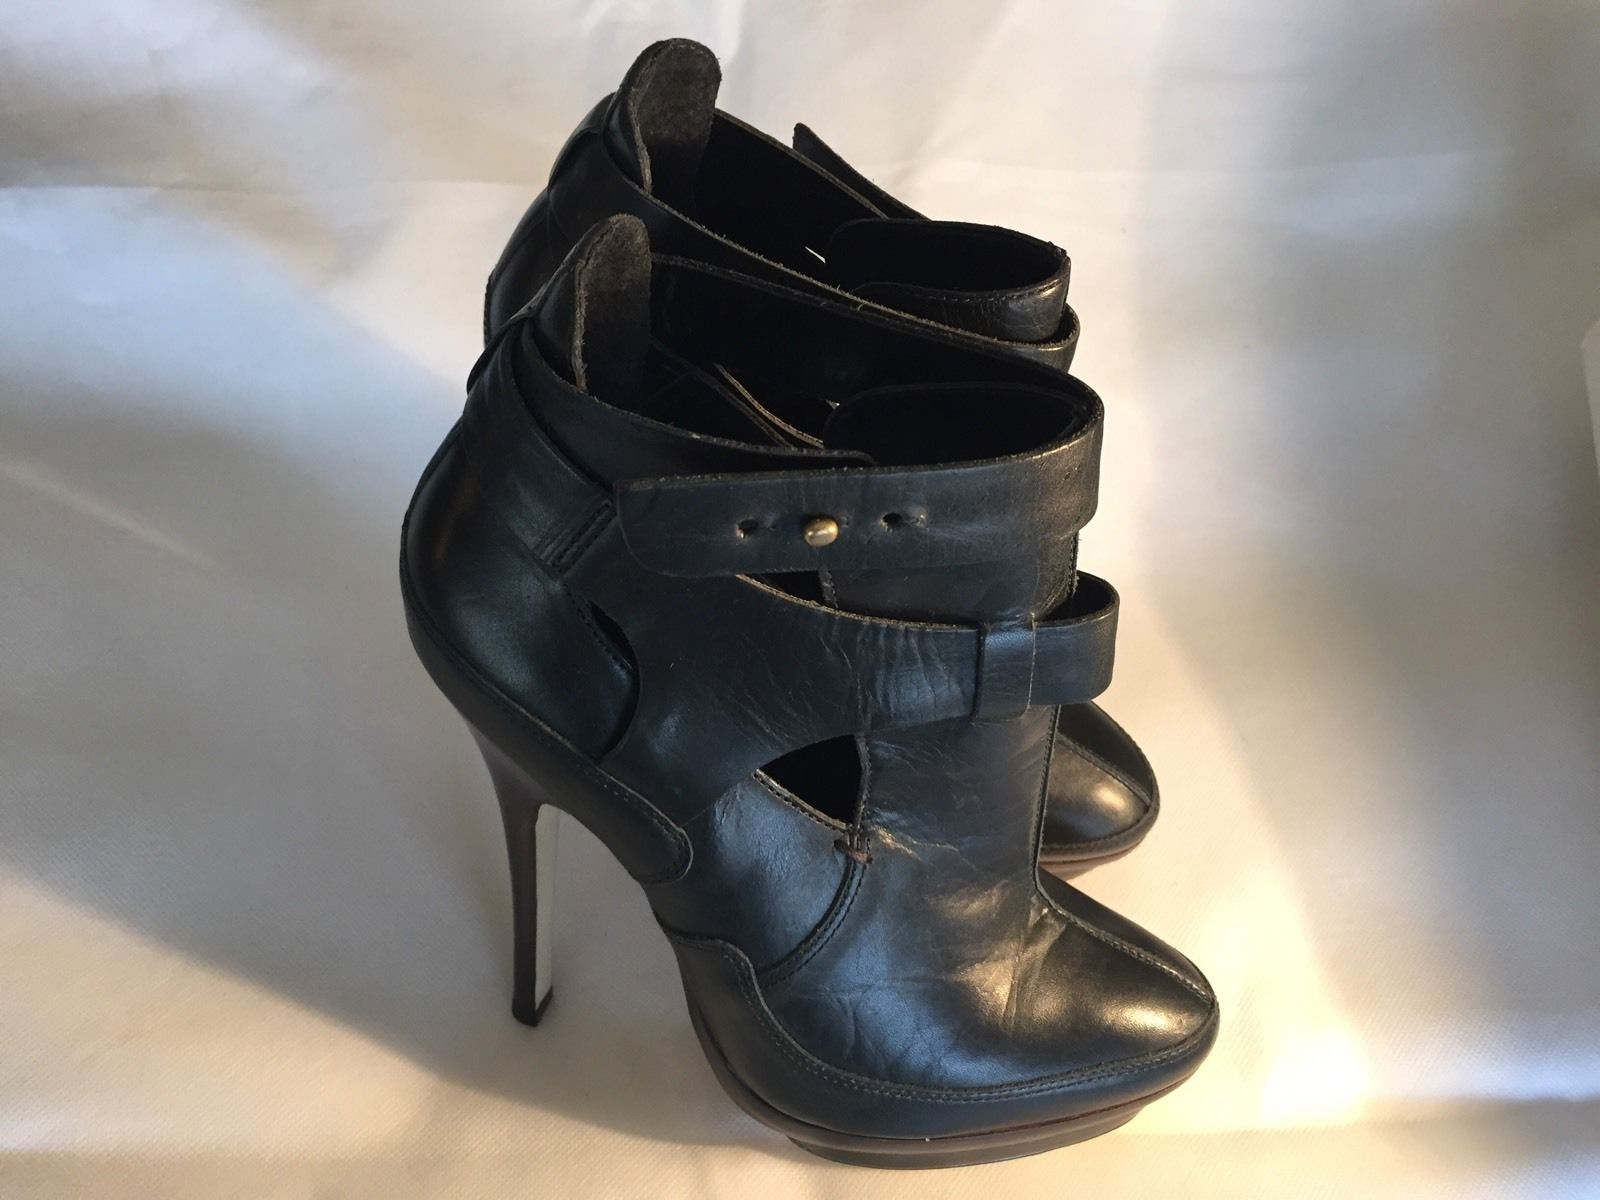 Aldo Black Leather High Strappy Ankle Boots 6